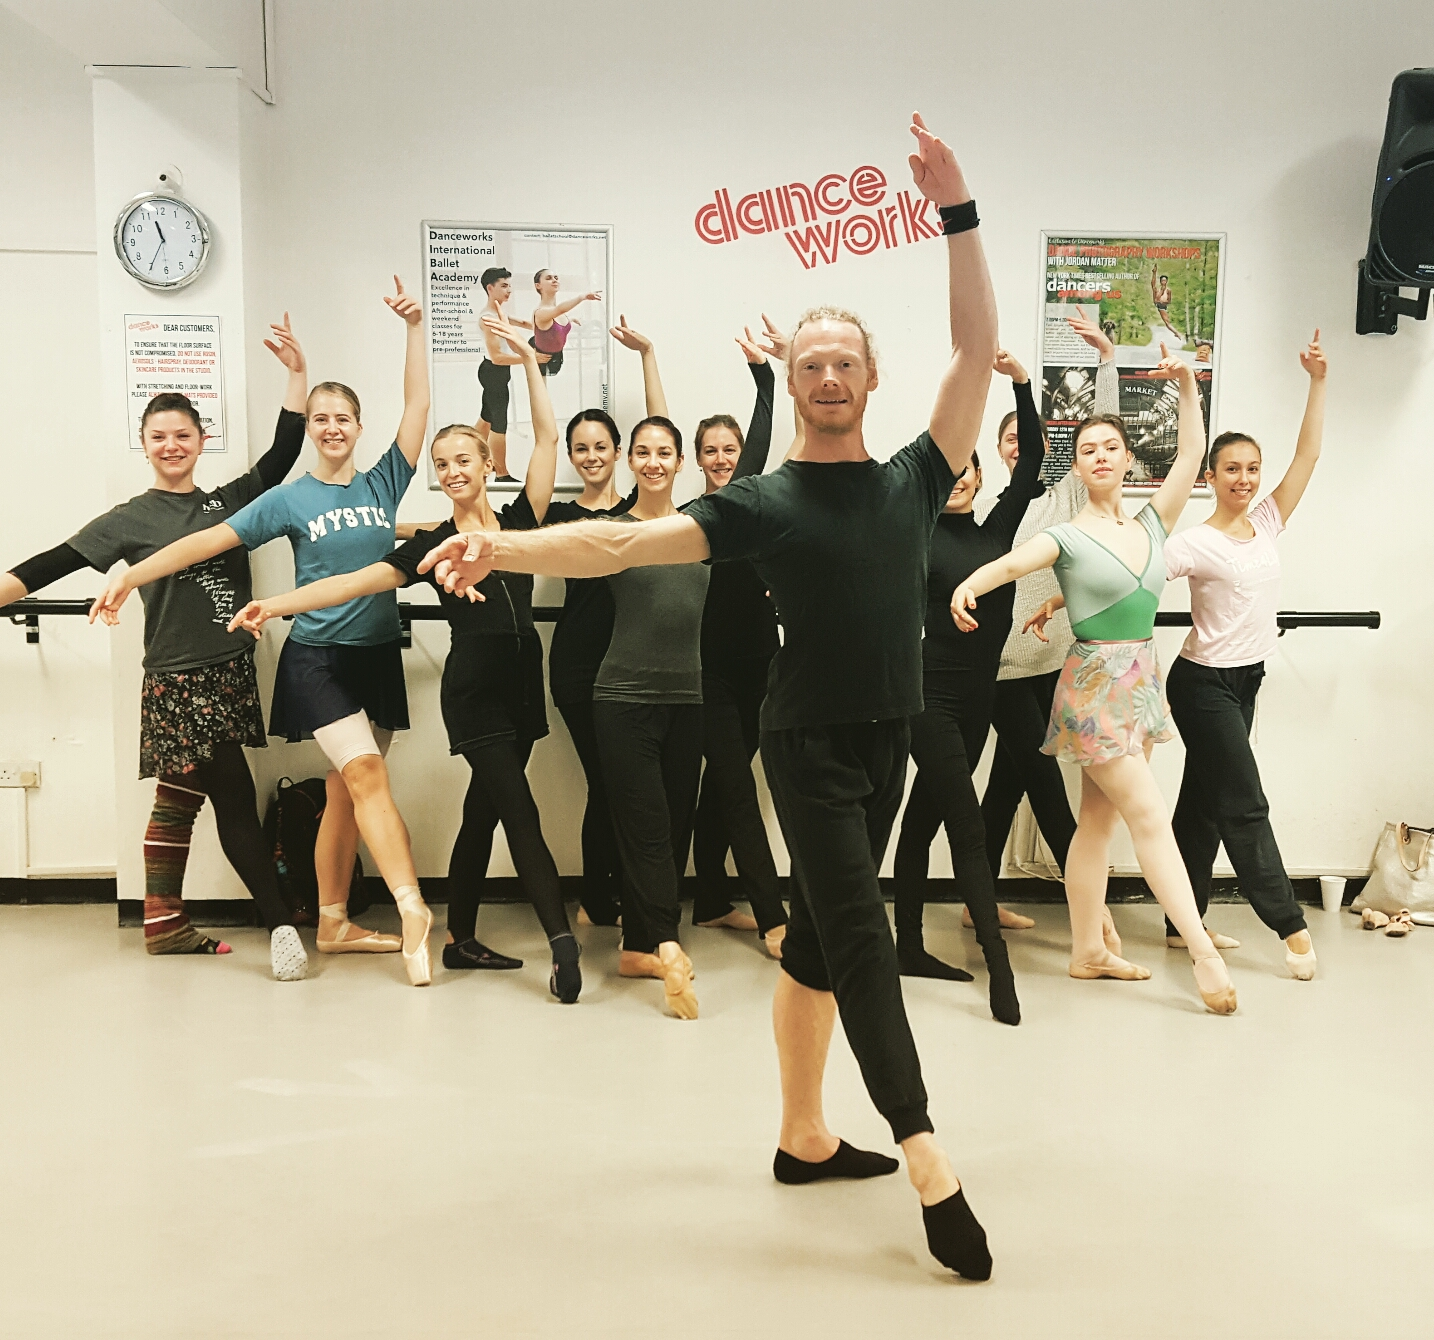 Classical ballet class with Adam Pudney at Danceworks in London